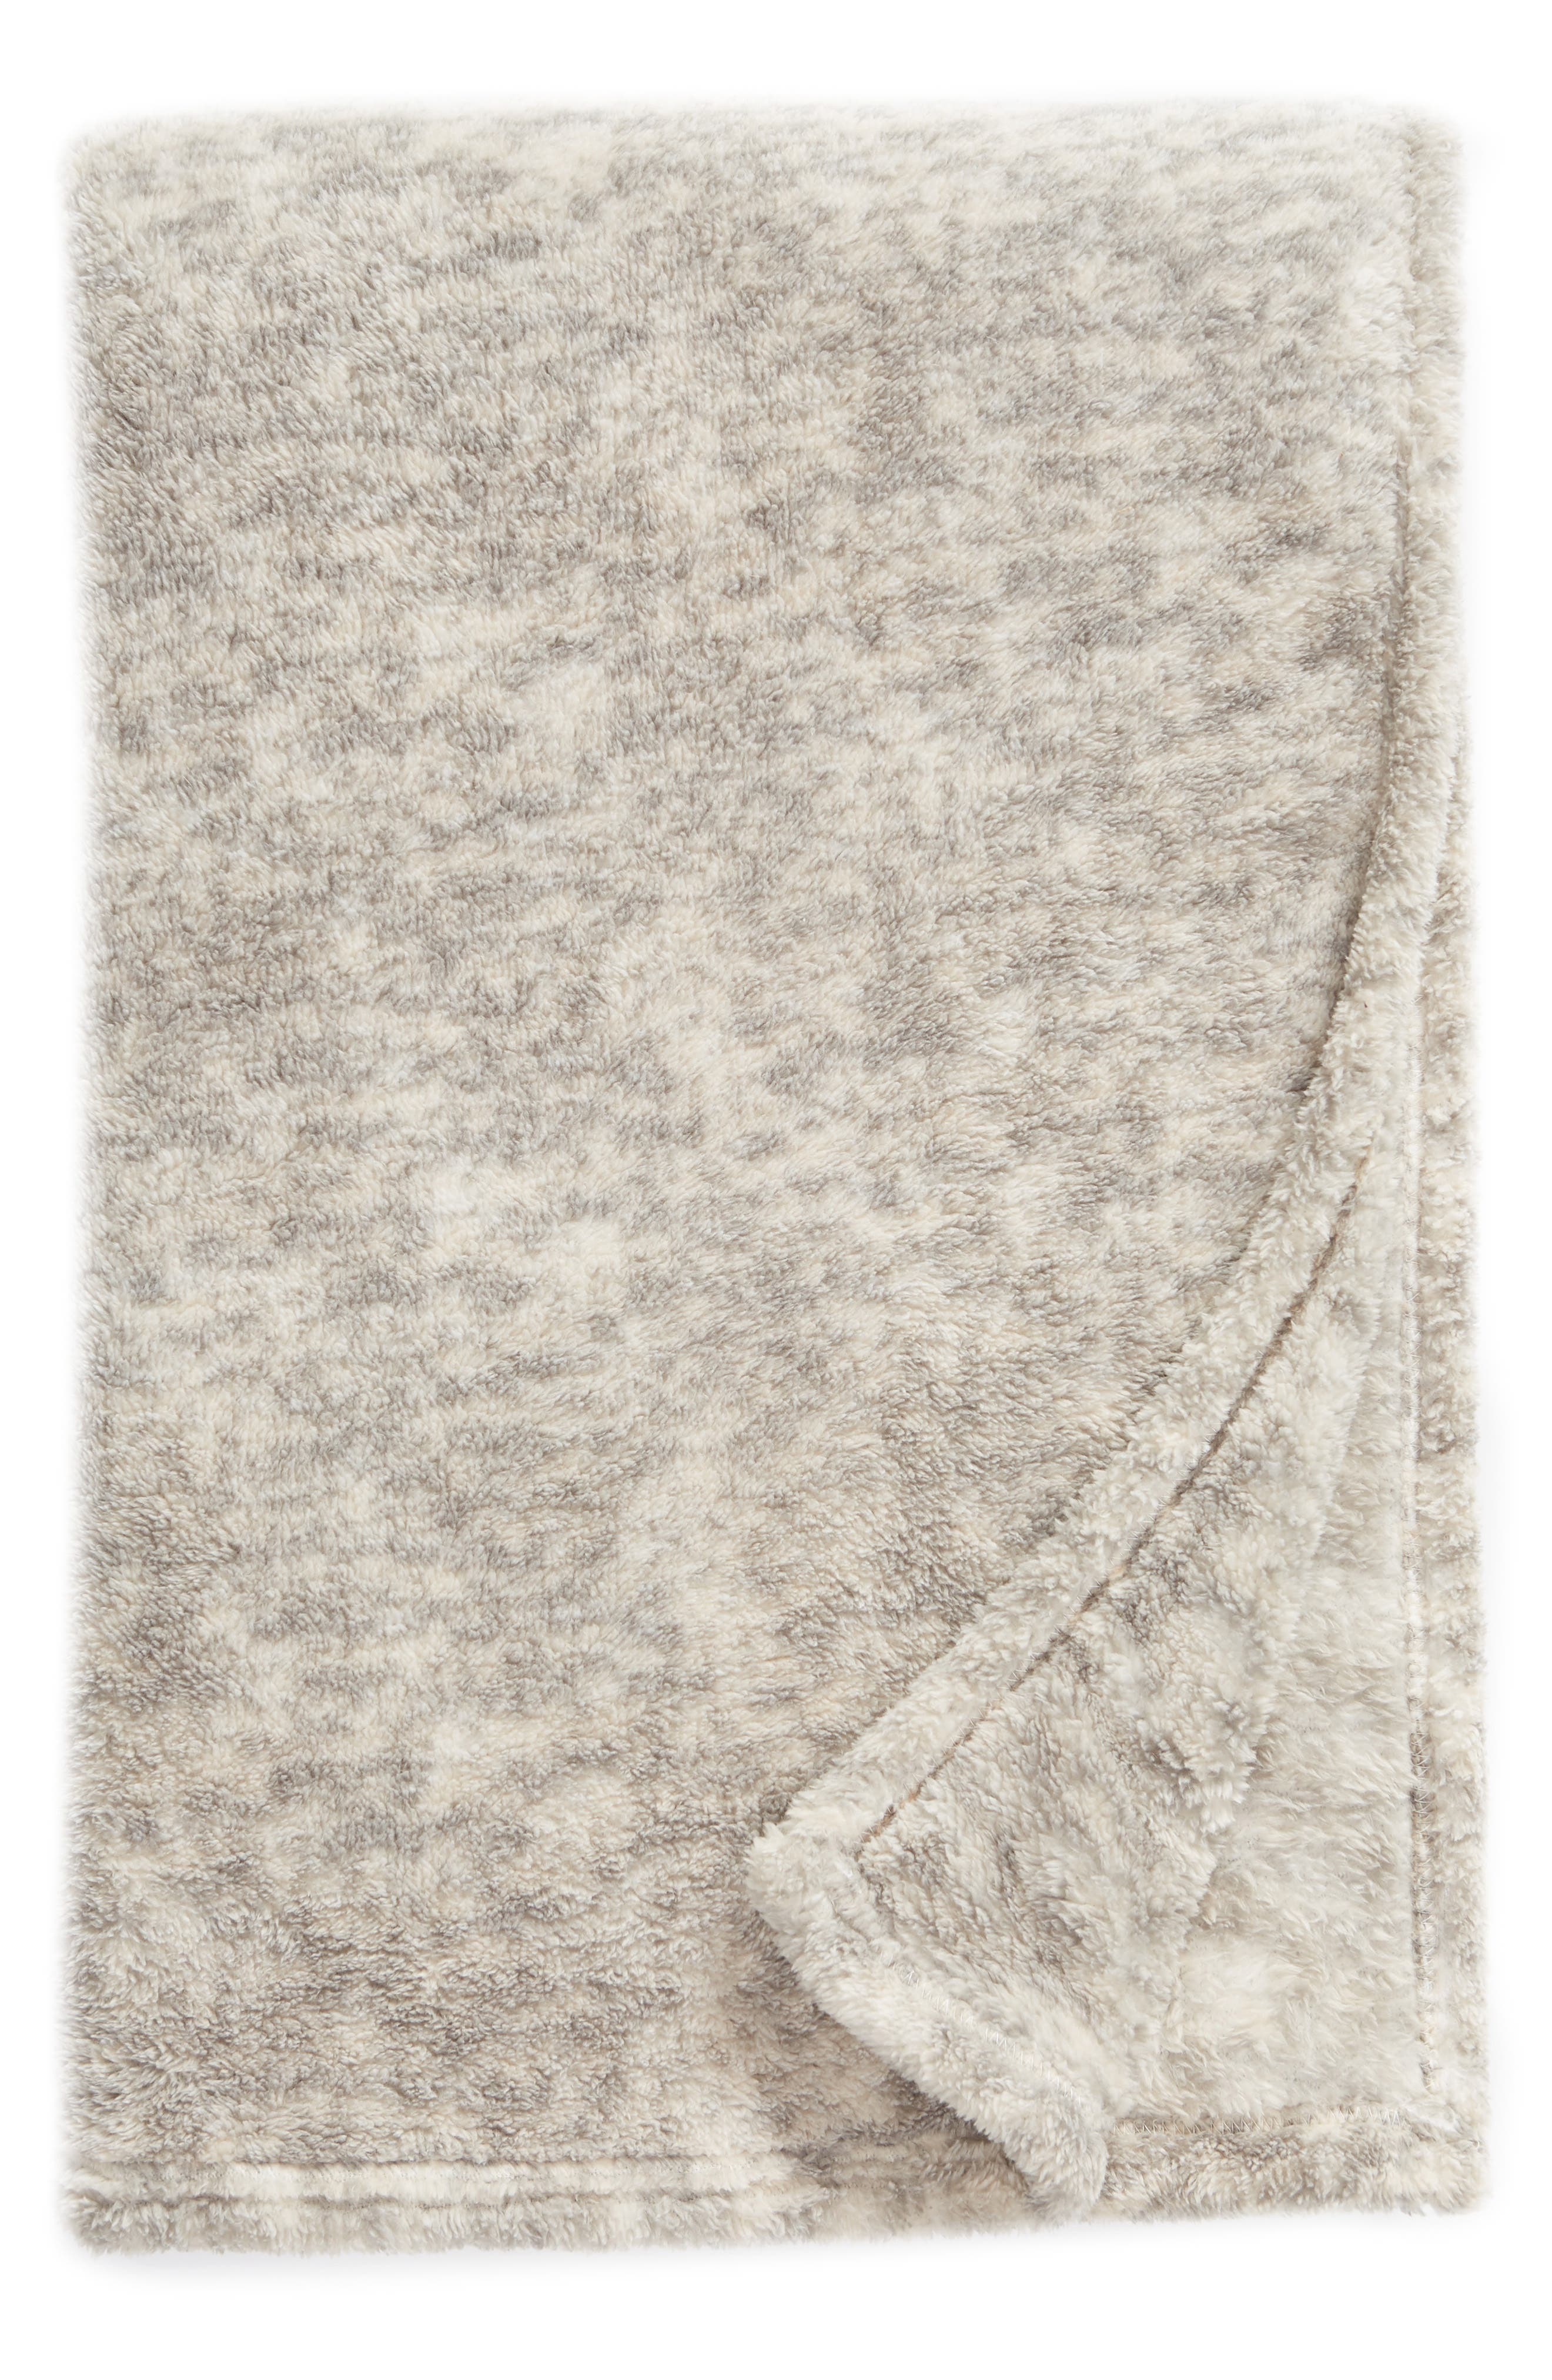 Heathered Throw Blanket,                             Main thumbnail 1, color,                             GREY